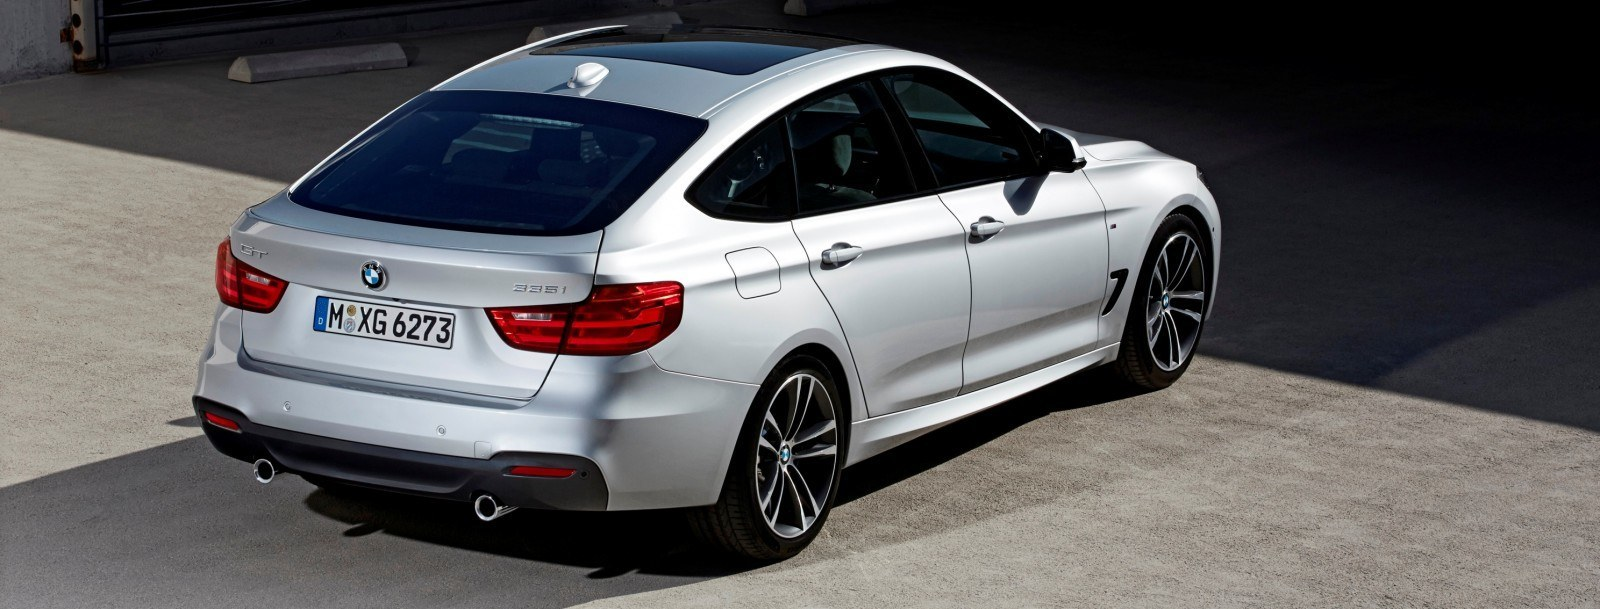 Best of Awards - 1000 miles at 100MPH - 2014 M Sport BMW 335i GT 71